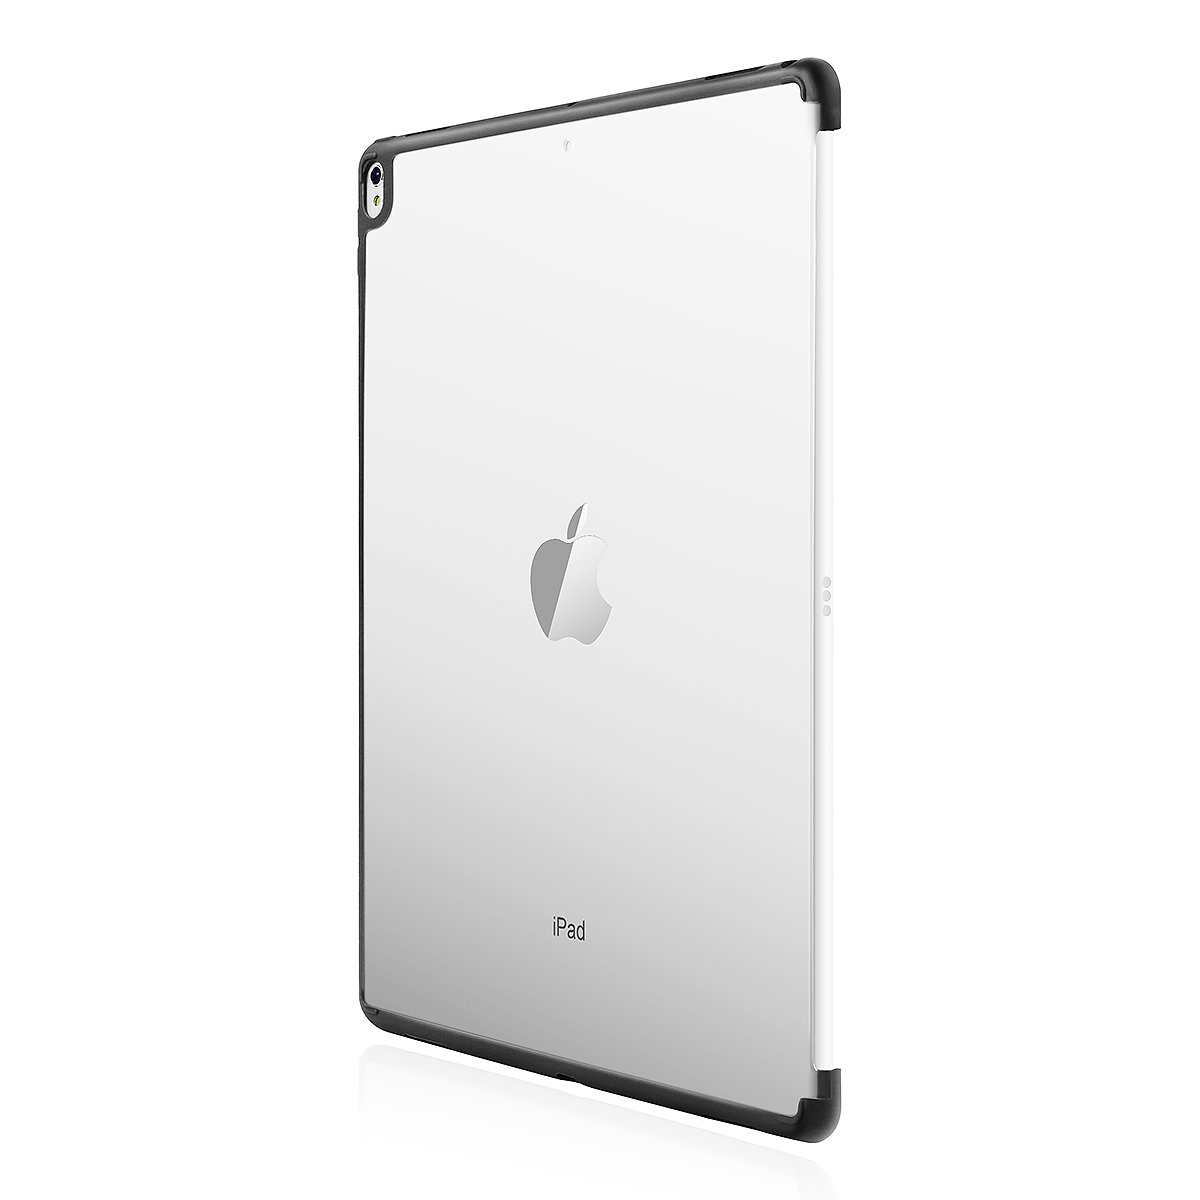 AICase iPad Pro 12.9 2017 Case, Frosted Clear Hard Case [Perfect Match with Official Smart Keyboard] with Soft TPU Bumper [Corner Protection] Slim Fit Back Cover for iPad Pro 12.9 2017 Release by AICase